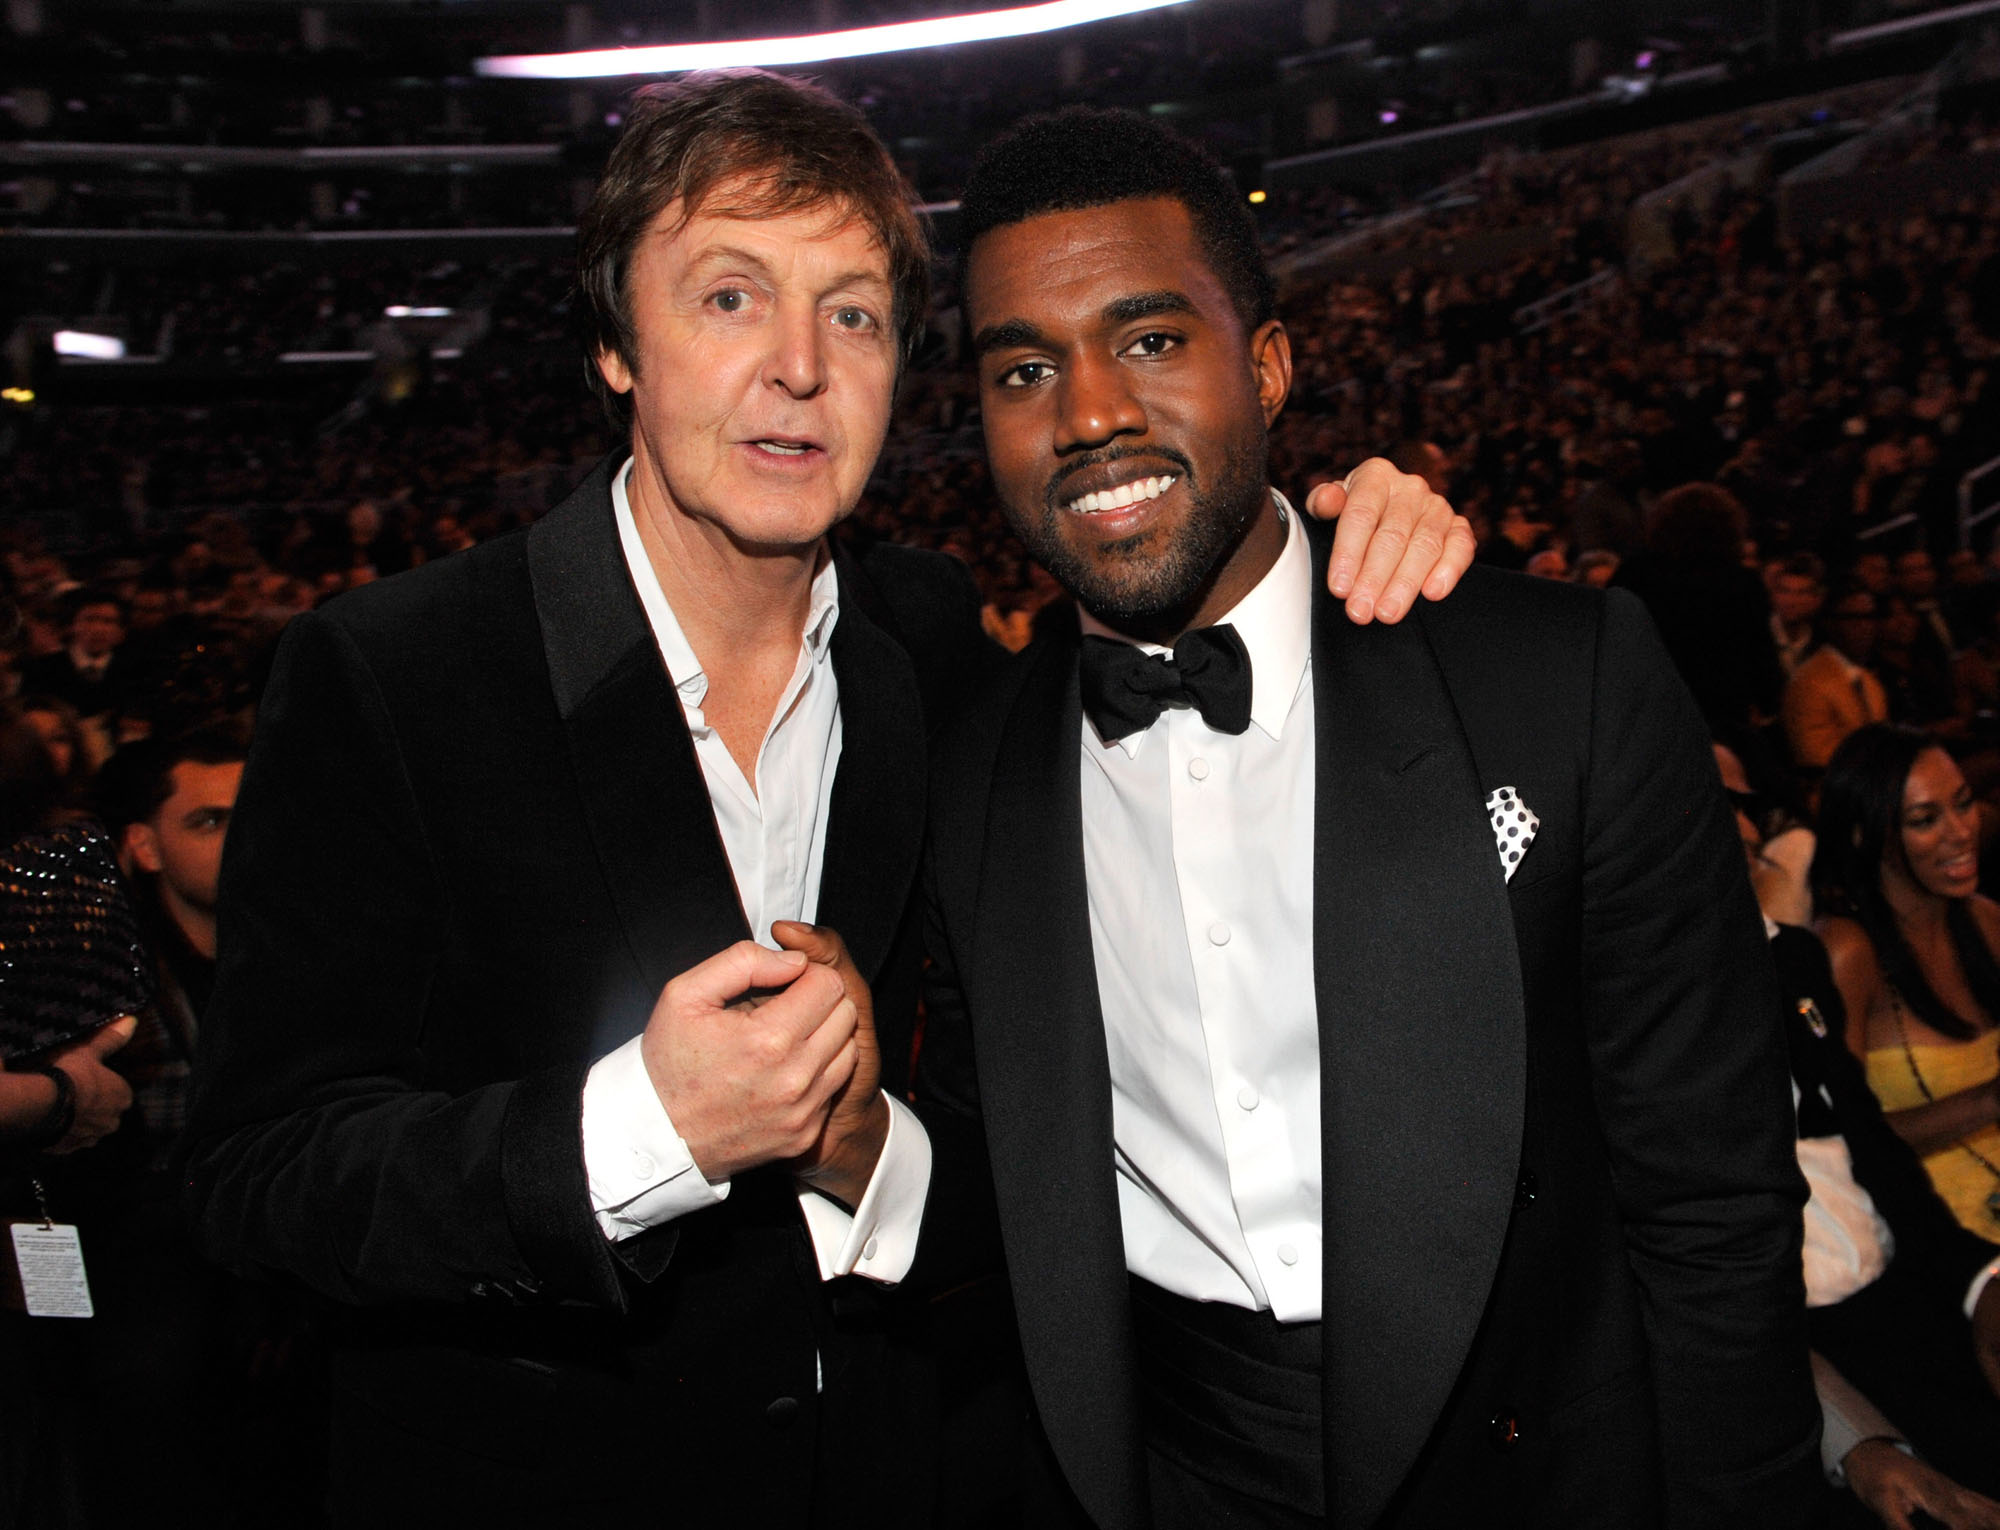 Sir Paul McCartney and Kanye West at the 51st Annual Grammy Awards at the Staples Center in Los Angeles on Feb. 8, 2009.